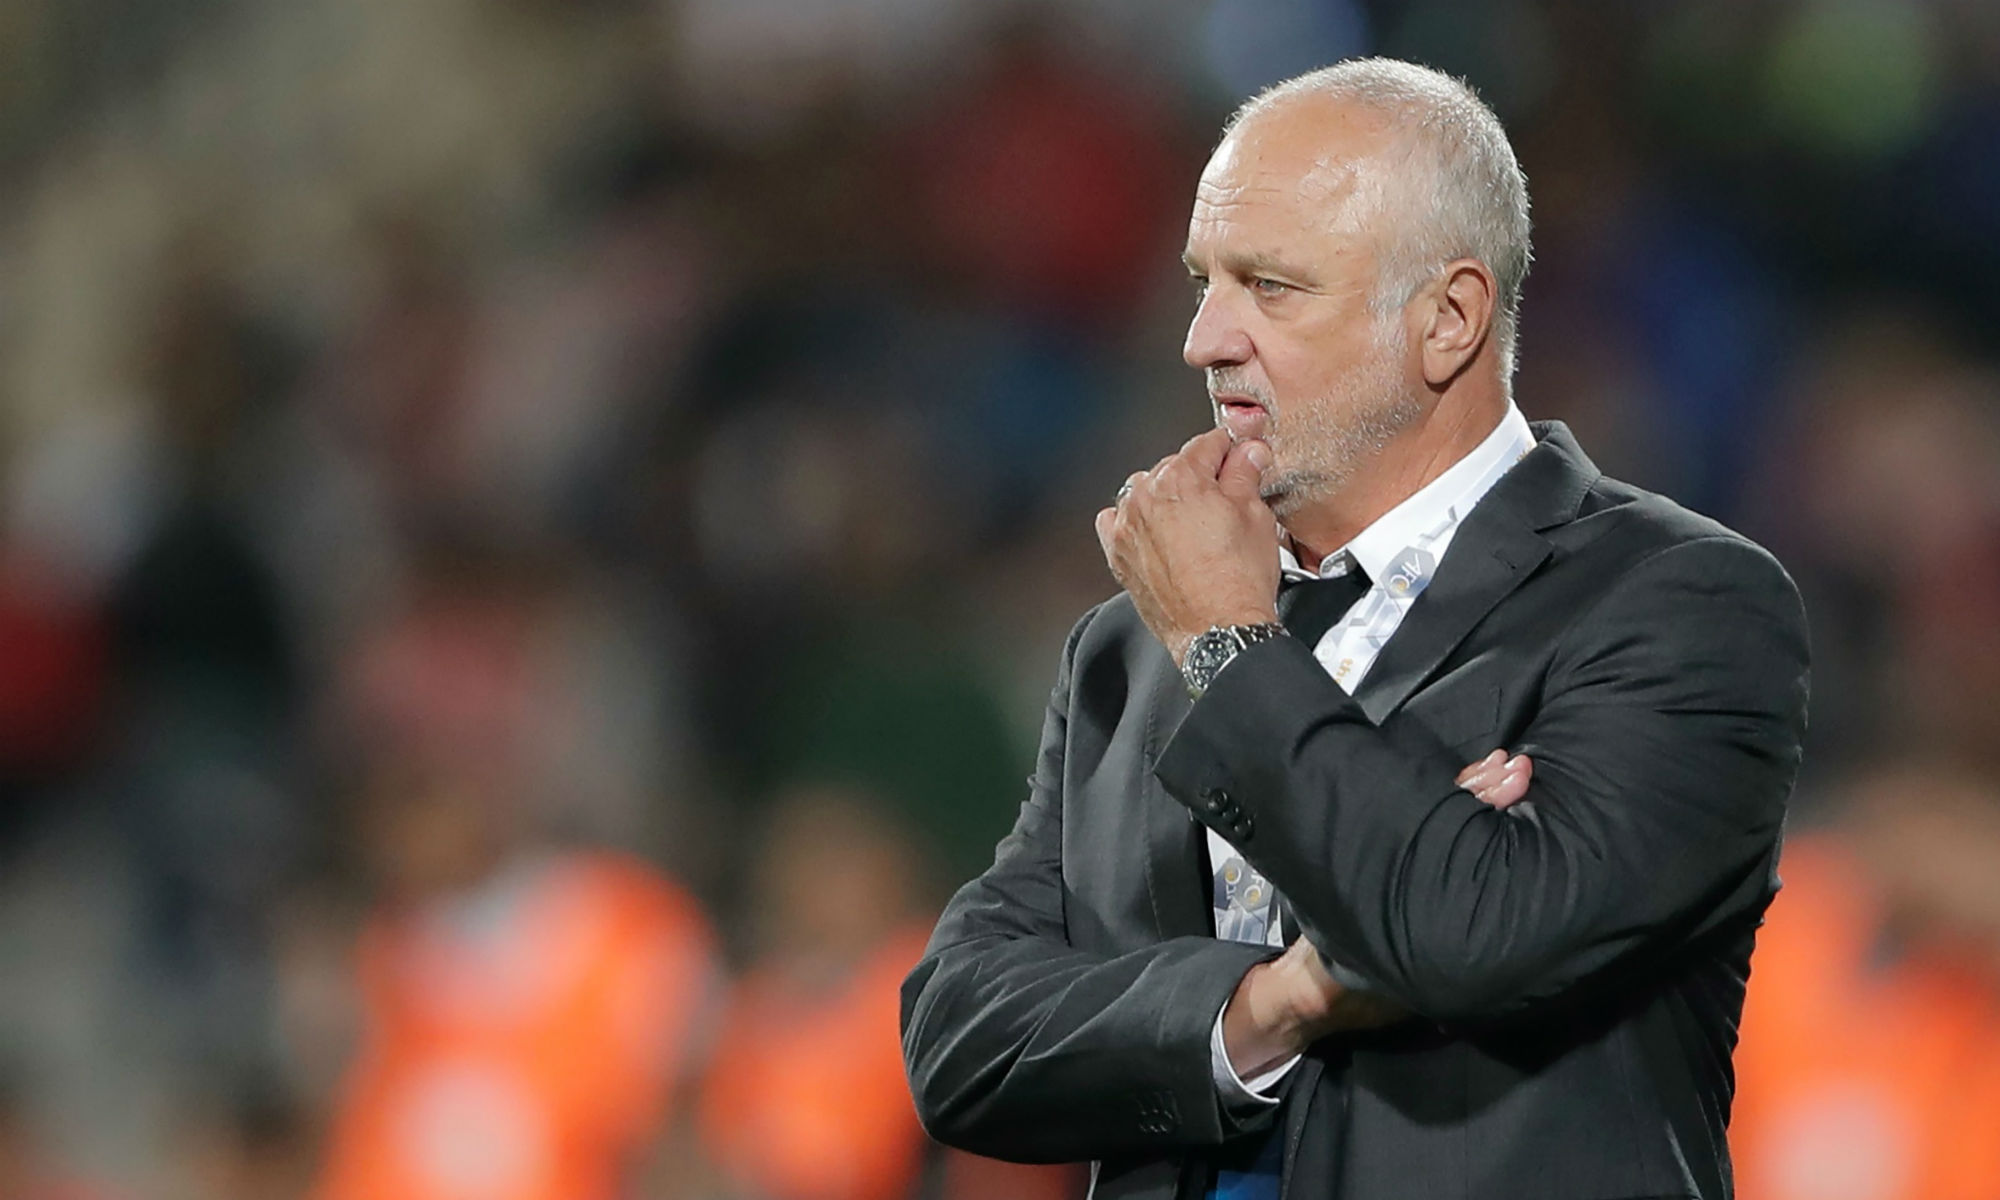 Graham Arnold's 'great headache' as Olympic preparations ramp up